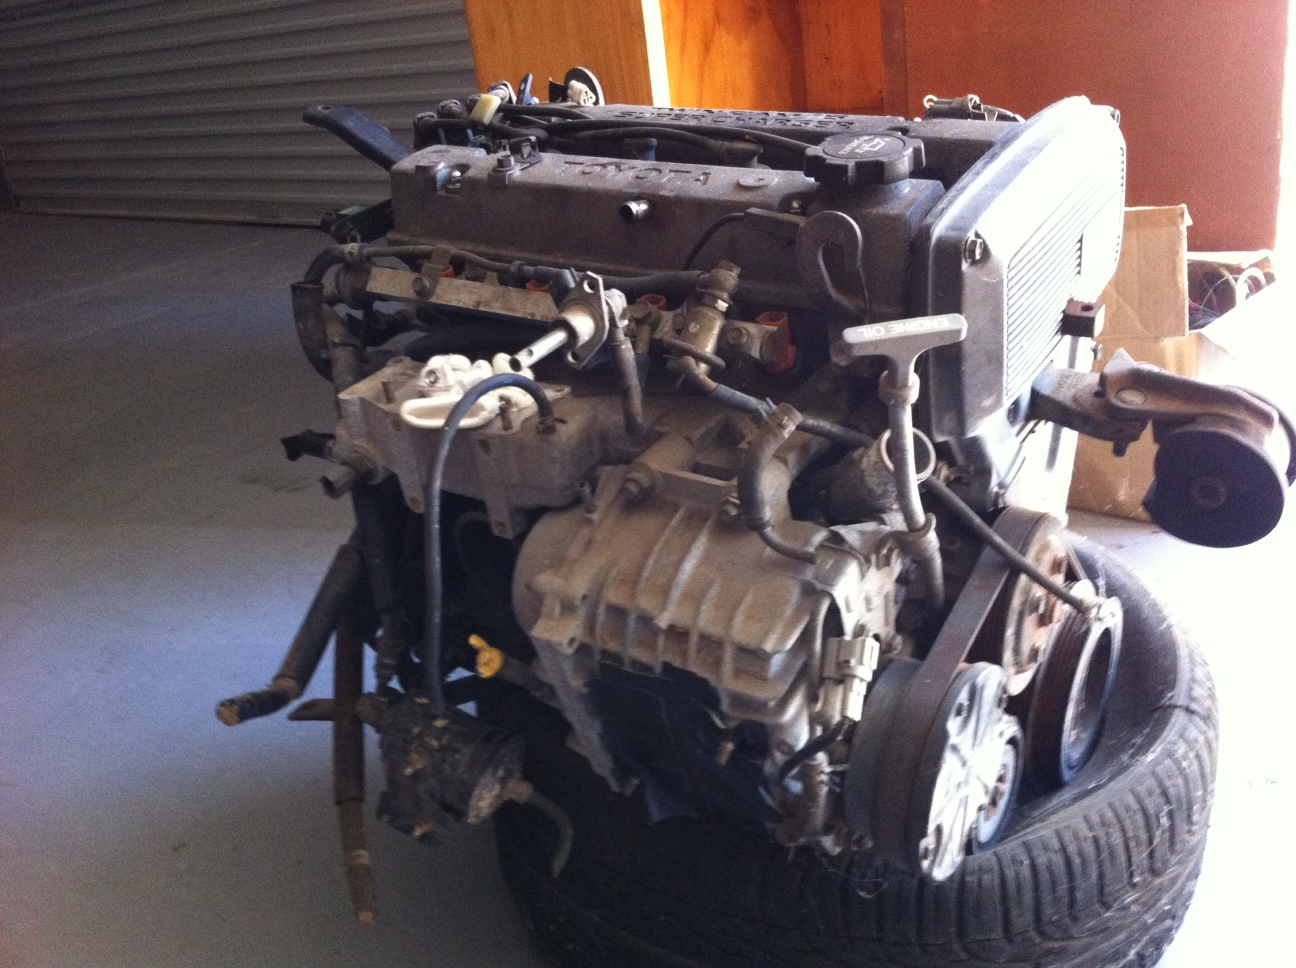 Fs 4agze Engine With Computer And Wiring Harness For Sale Car Full Post 14007 0 56178500 1311218157 Thumb